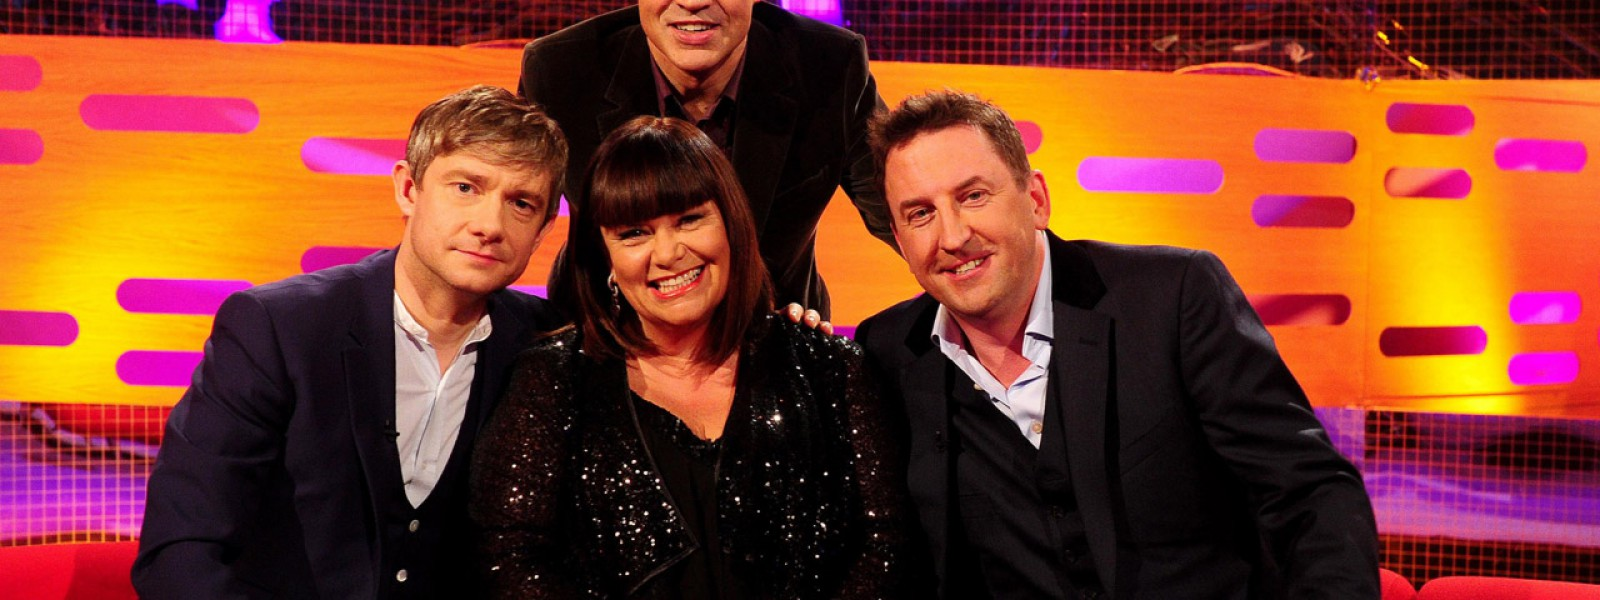 grahamnorton_photo_s12_e8_01